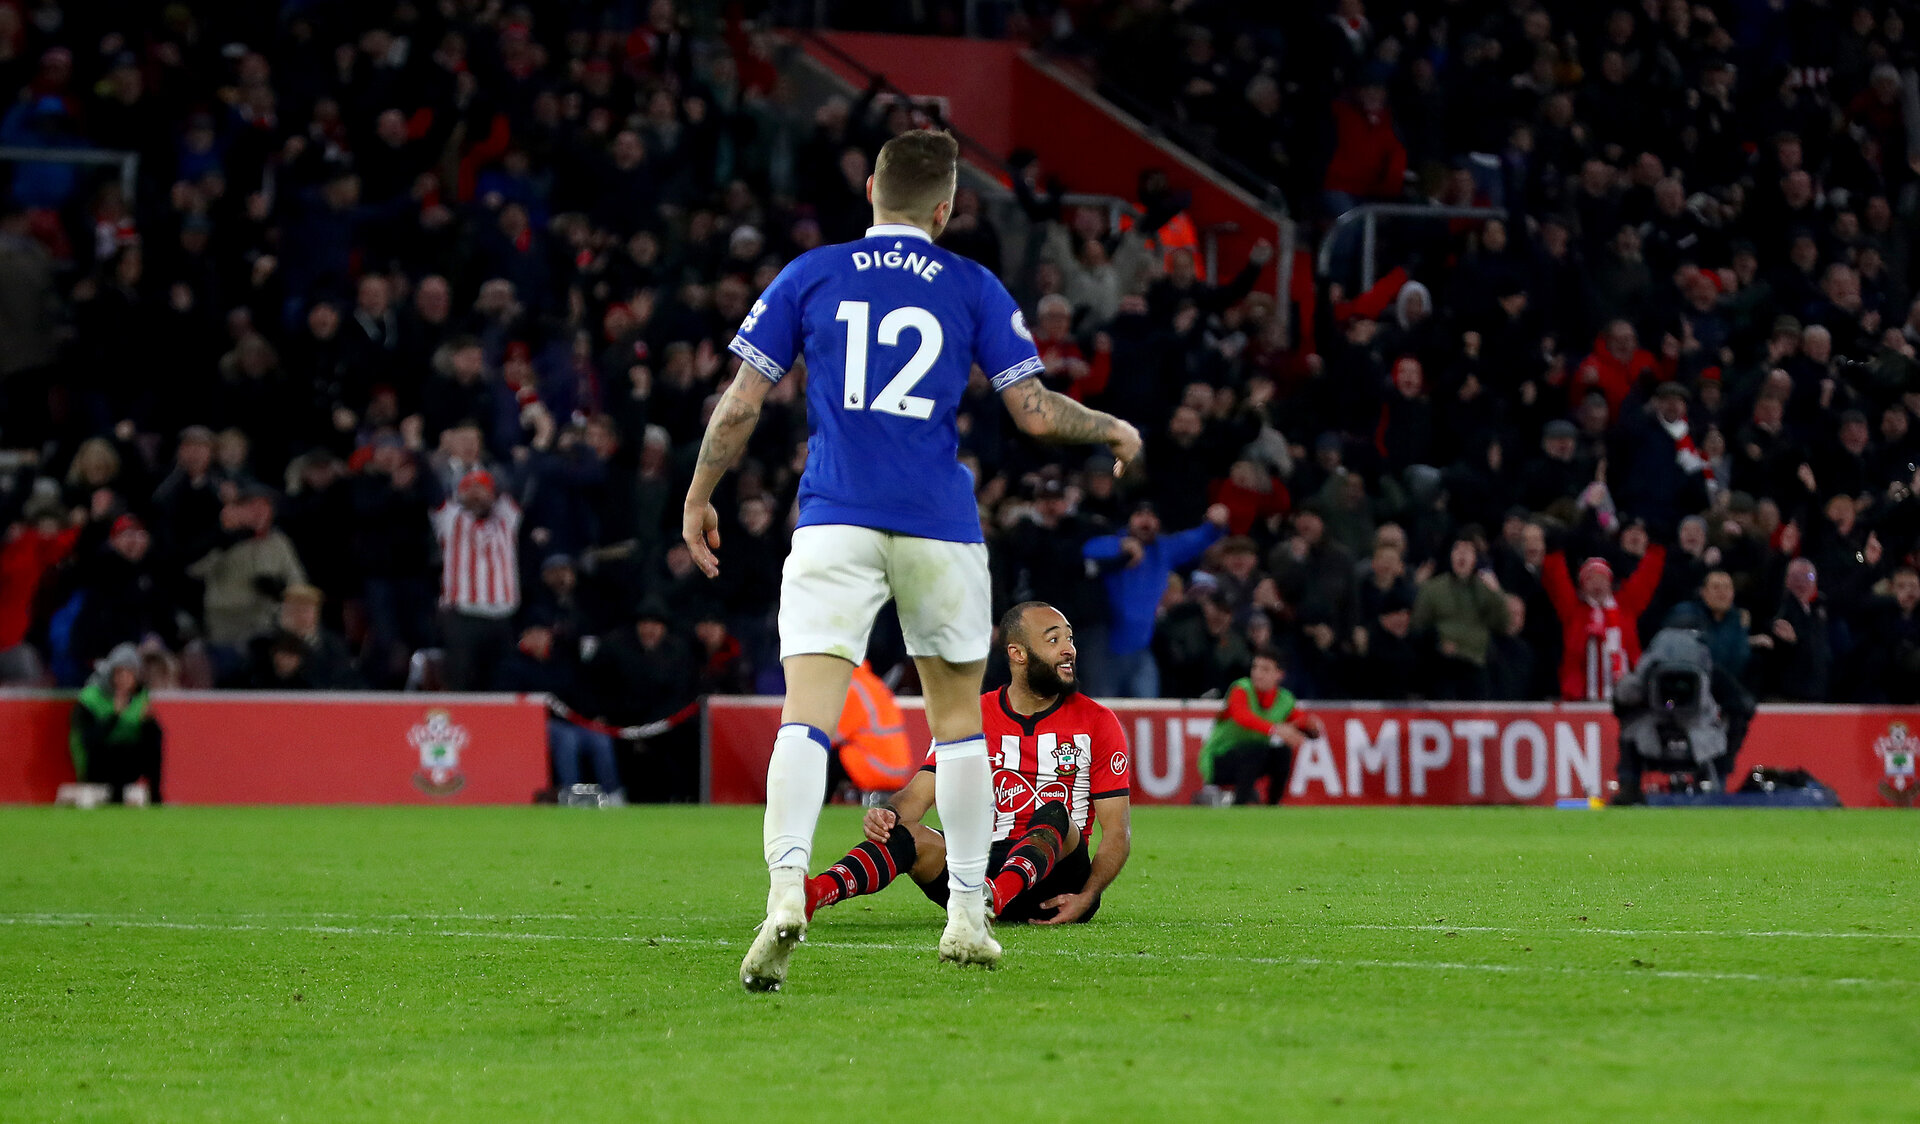 SOUTHAMPTON, ENGLAND - JANUARY 19: Nathan Redmond of Southampton looks on confused as the ball finds its way into the net for his teams second goal of the game during the Premier League match between Southampton FC and Everton FC at St Mary's Stadium on January 19, 2019 in Southampton, United Kingdom. (Photo by Matt Watson/Southampton FC via Getty Images)